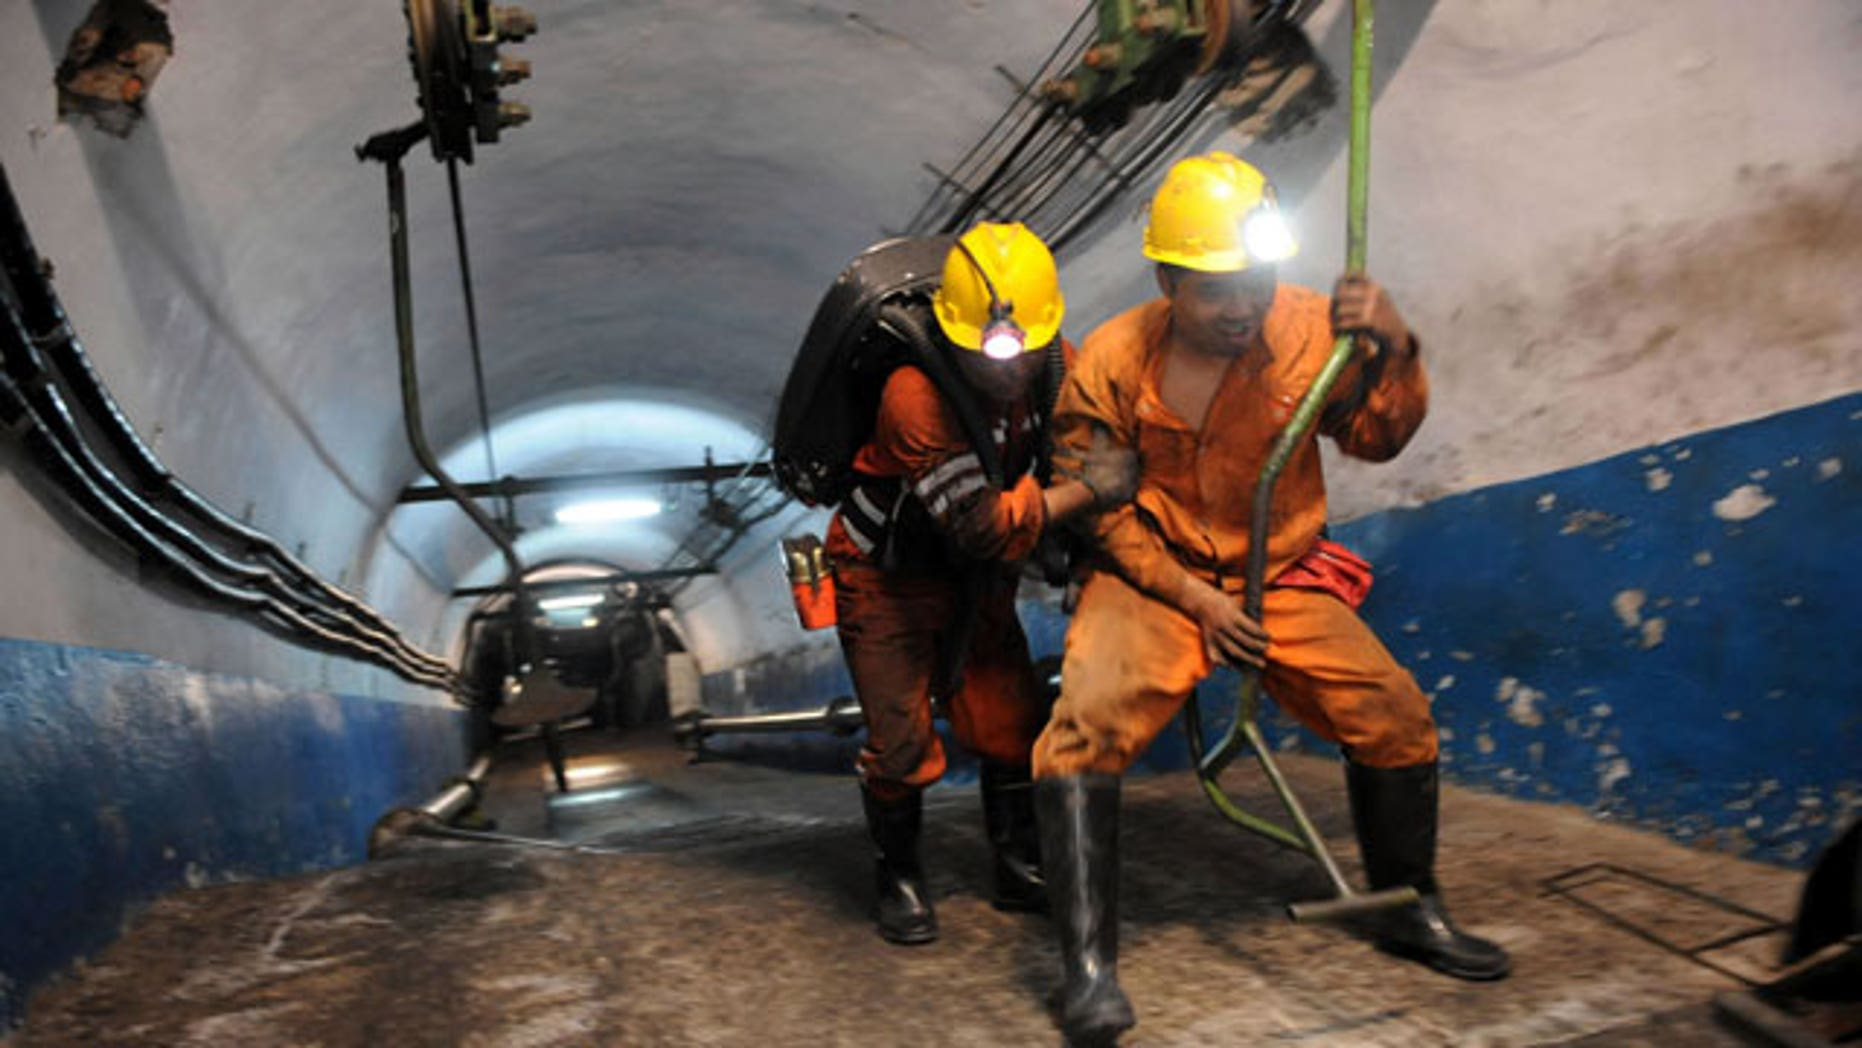 escuers are ready to go underground after an explosion at the state-run Pingyu Coal & Electric Co. Ltd mine in Yuzhou city, central China's Henan province, on Saturday Oct. 16, 2010. Rescuers battled dangerous levels of gas and the risk of falling coal as they worked to free 17 miners after the explosion at the coal mine in central China early Saturday.